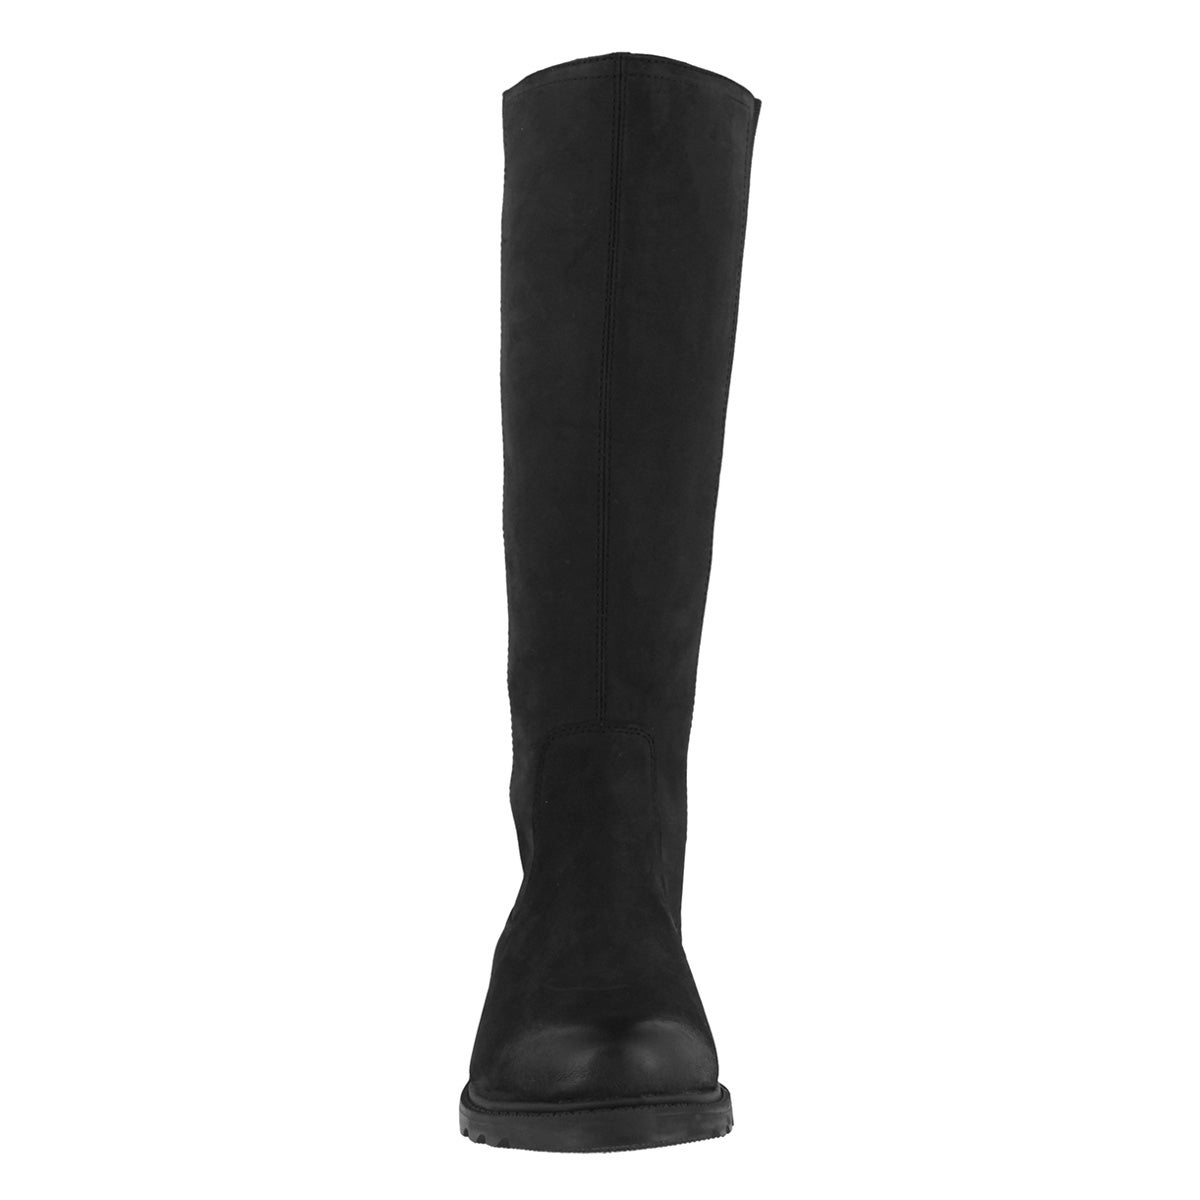 Lds Ainsley Tall black wtpf boot